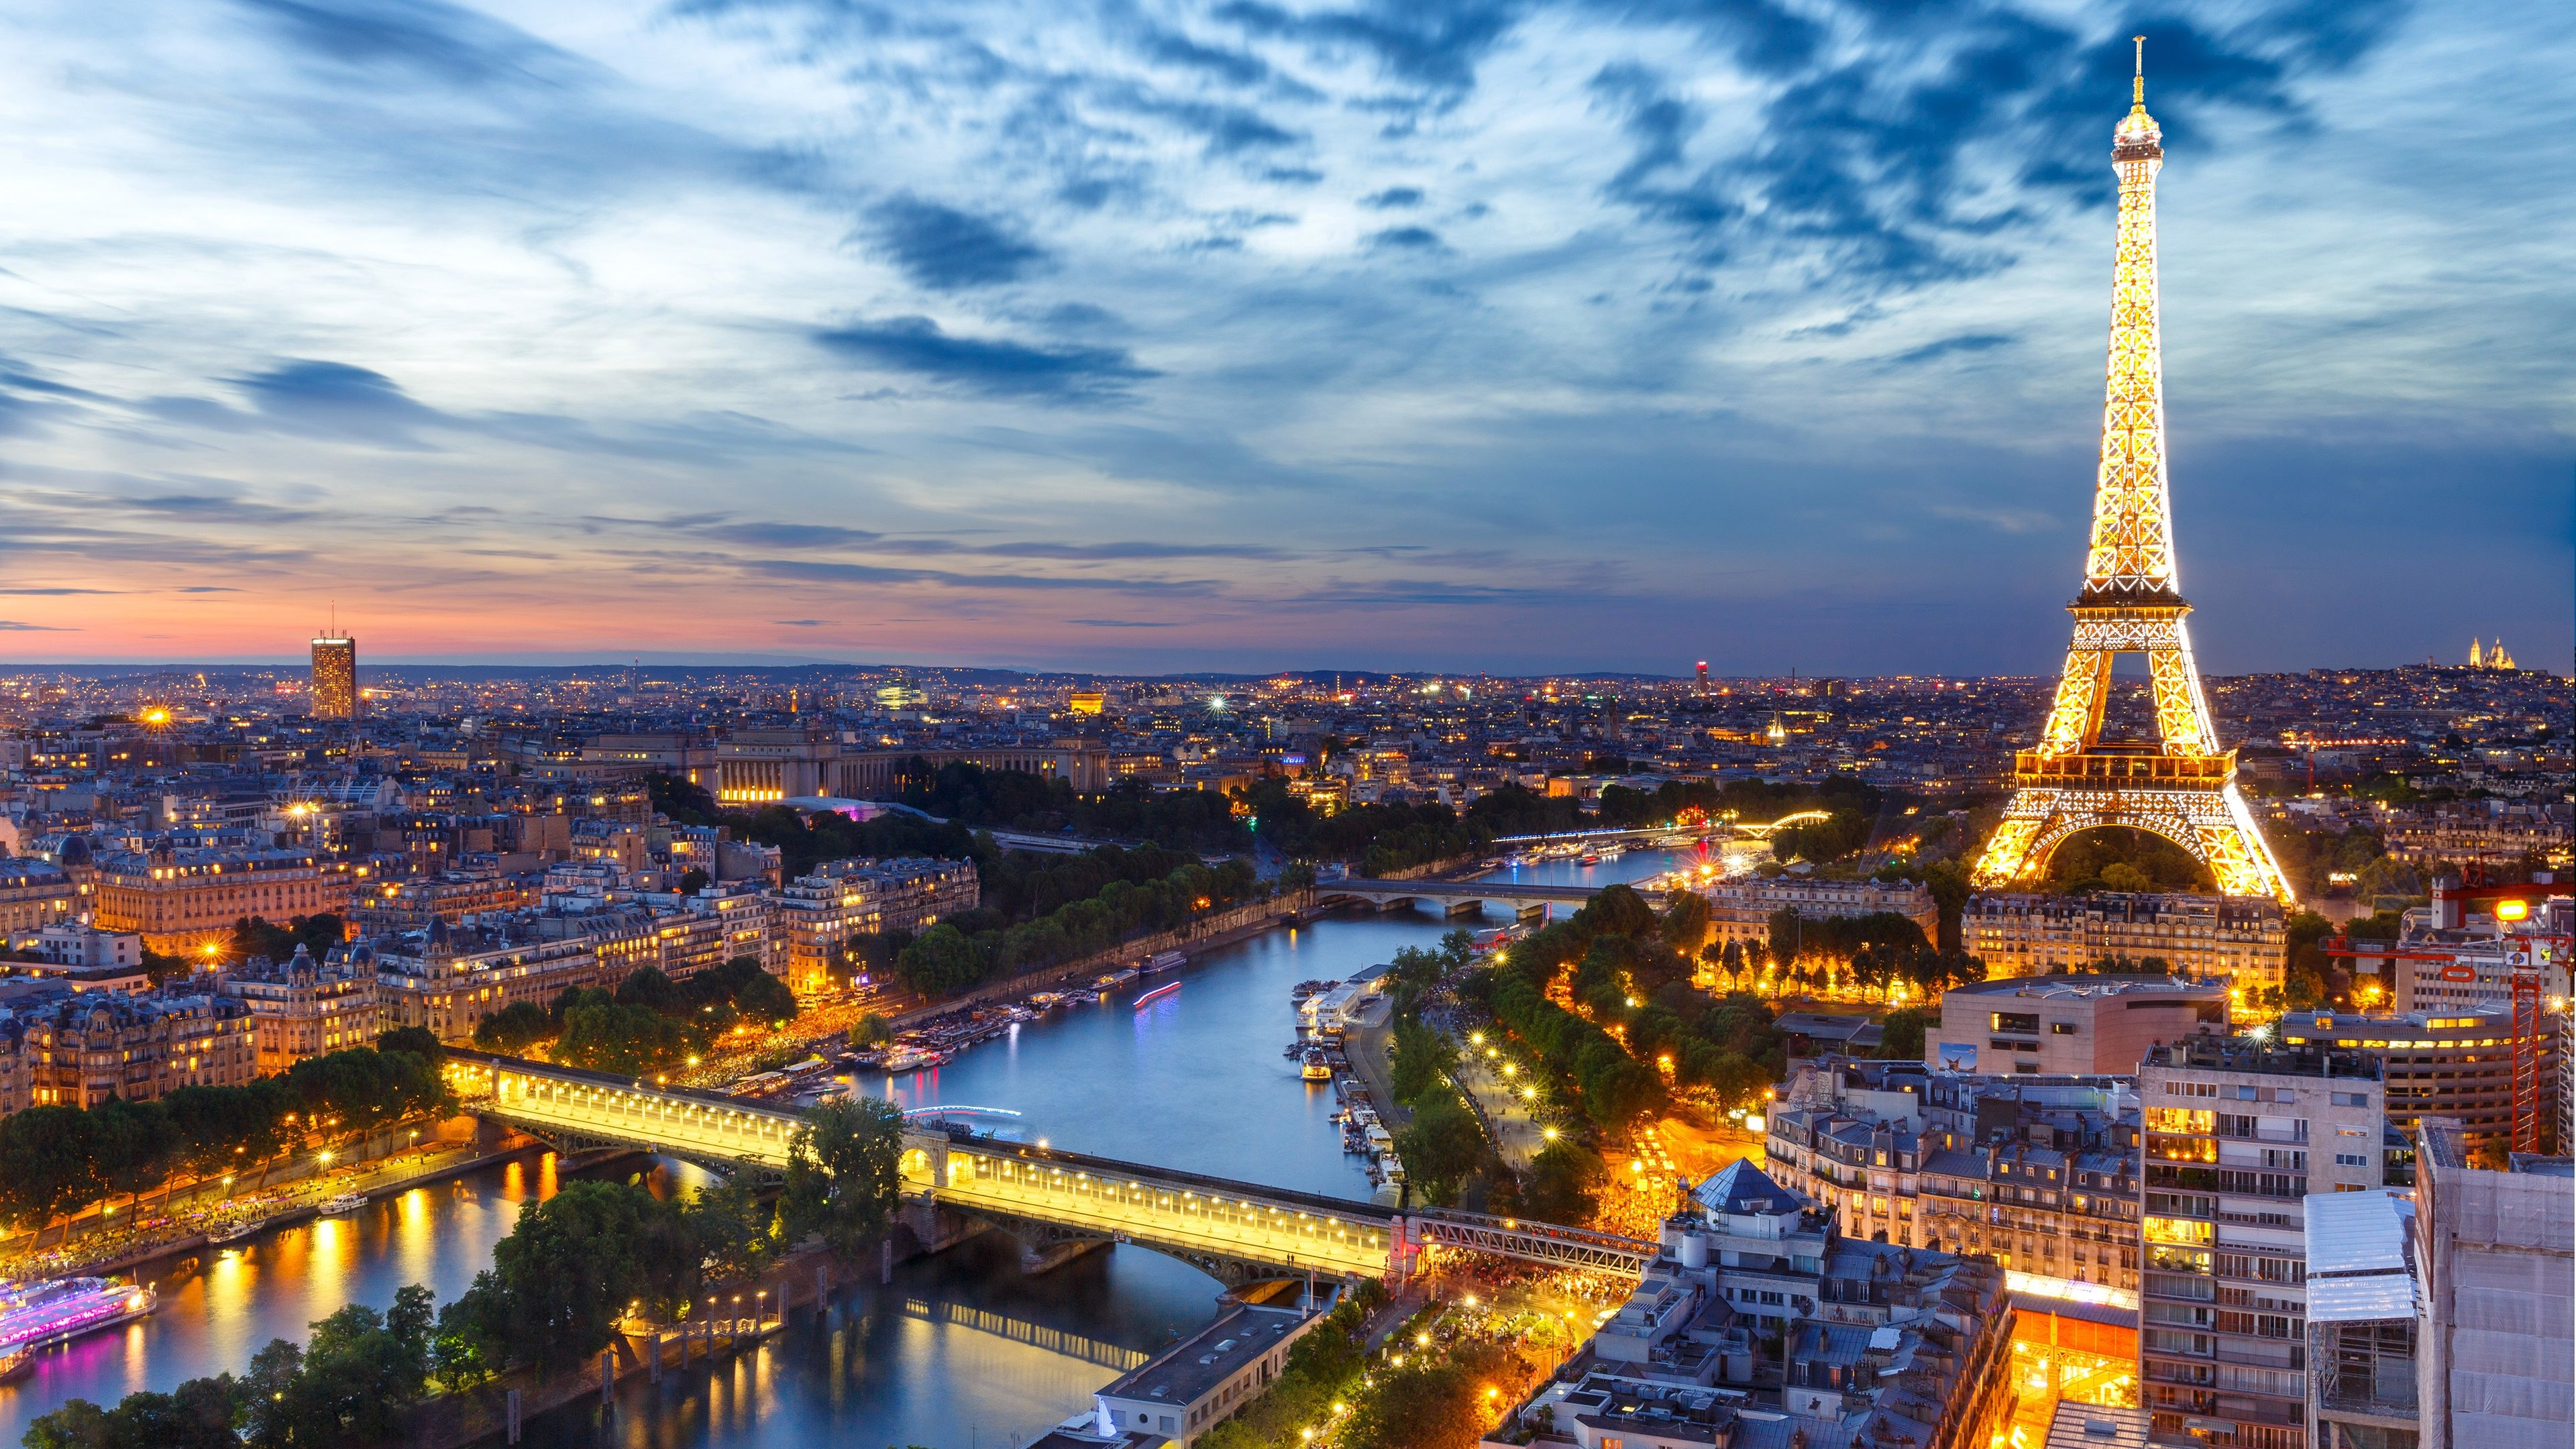 4k Paris Wallpapers Top Free 4k Paris Backgrounds Wallpaperaccess